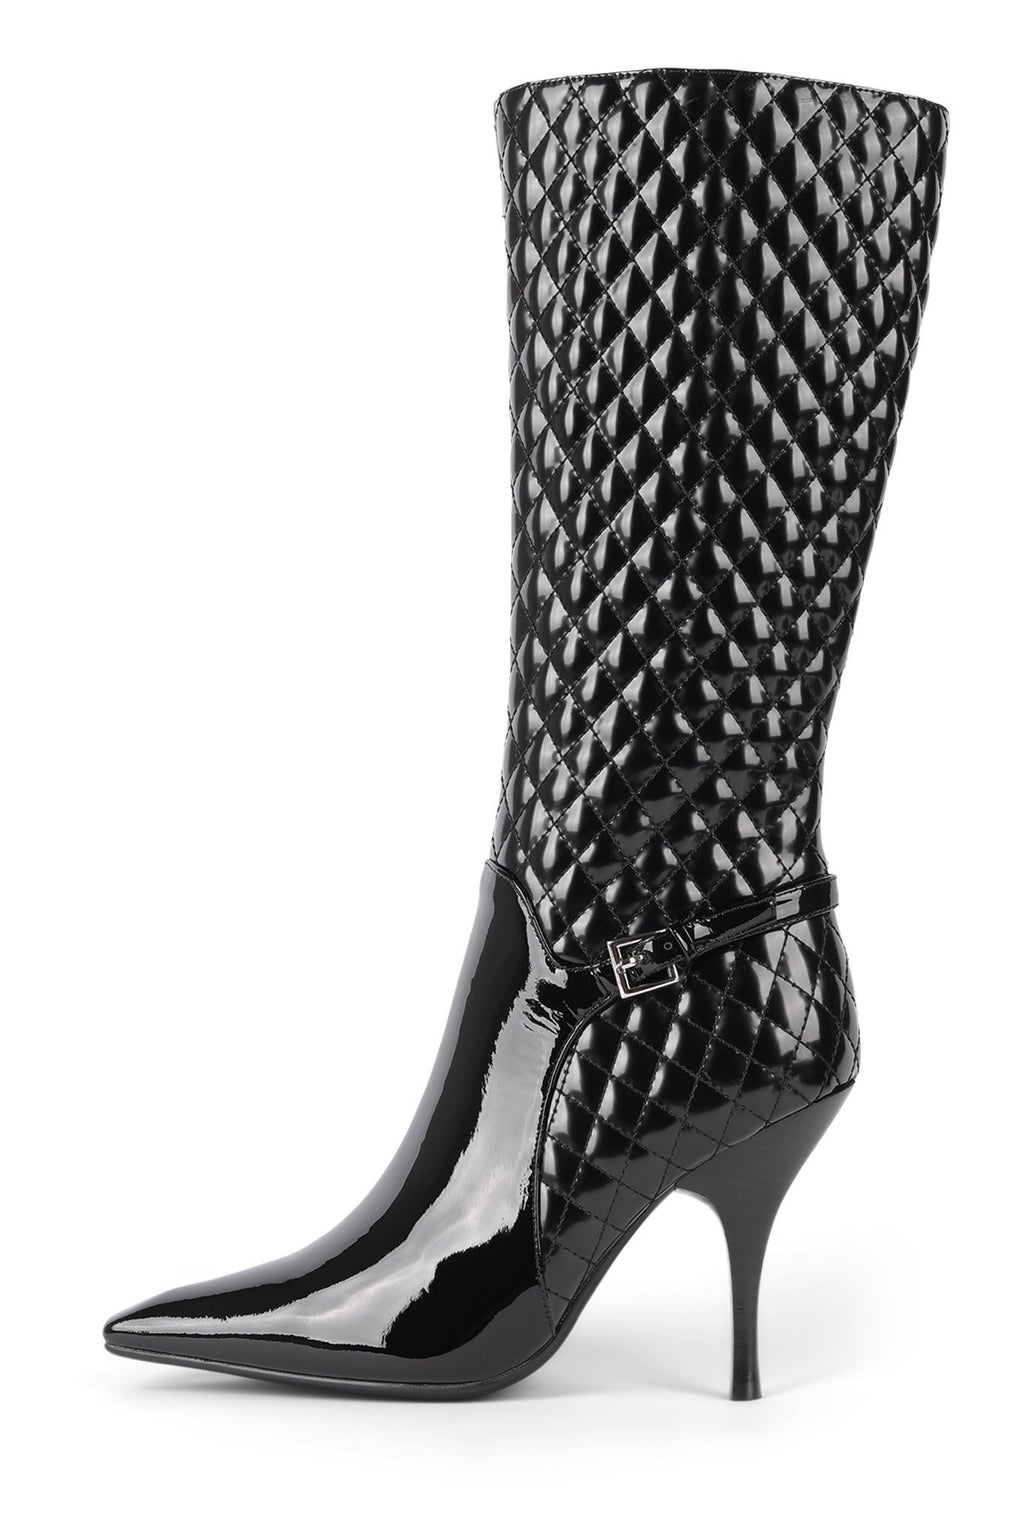 BISSEE Knee-High Boot STRATEGY Black Patent Black 6